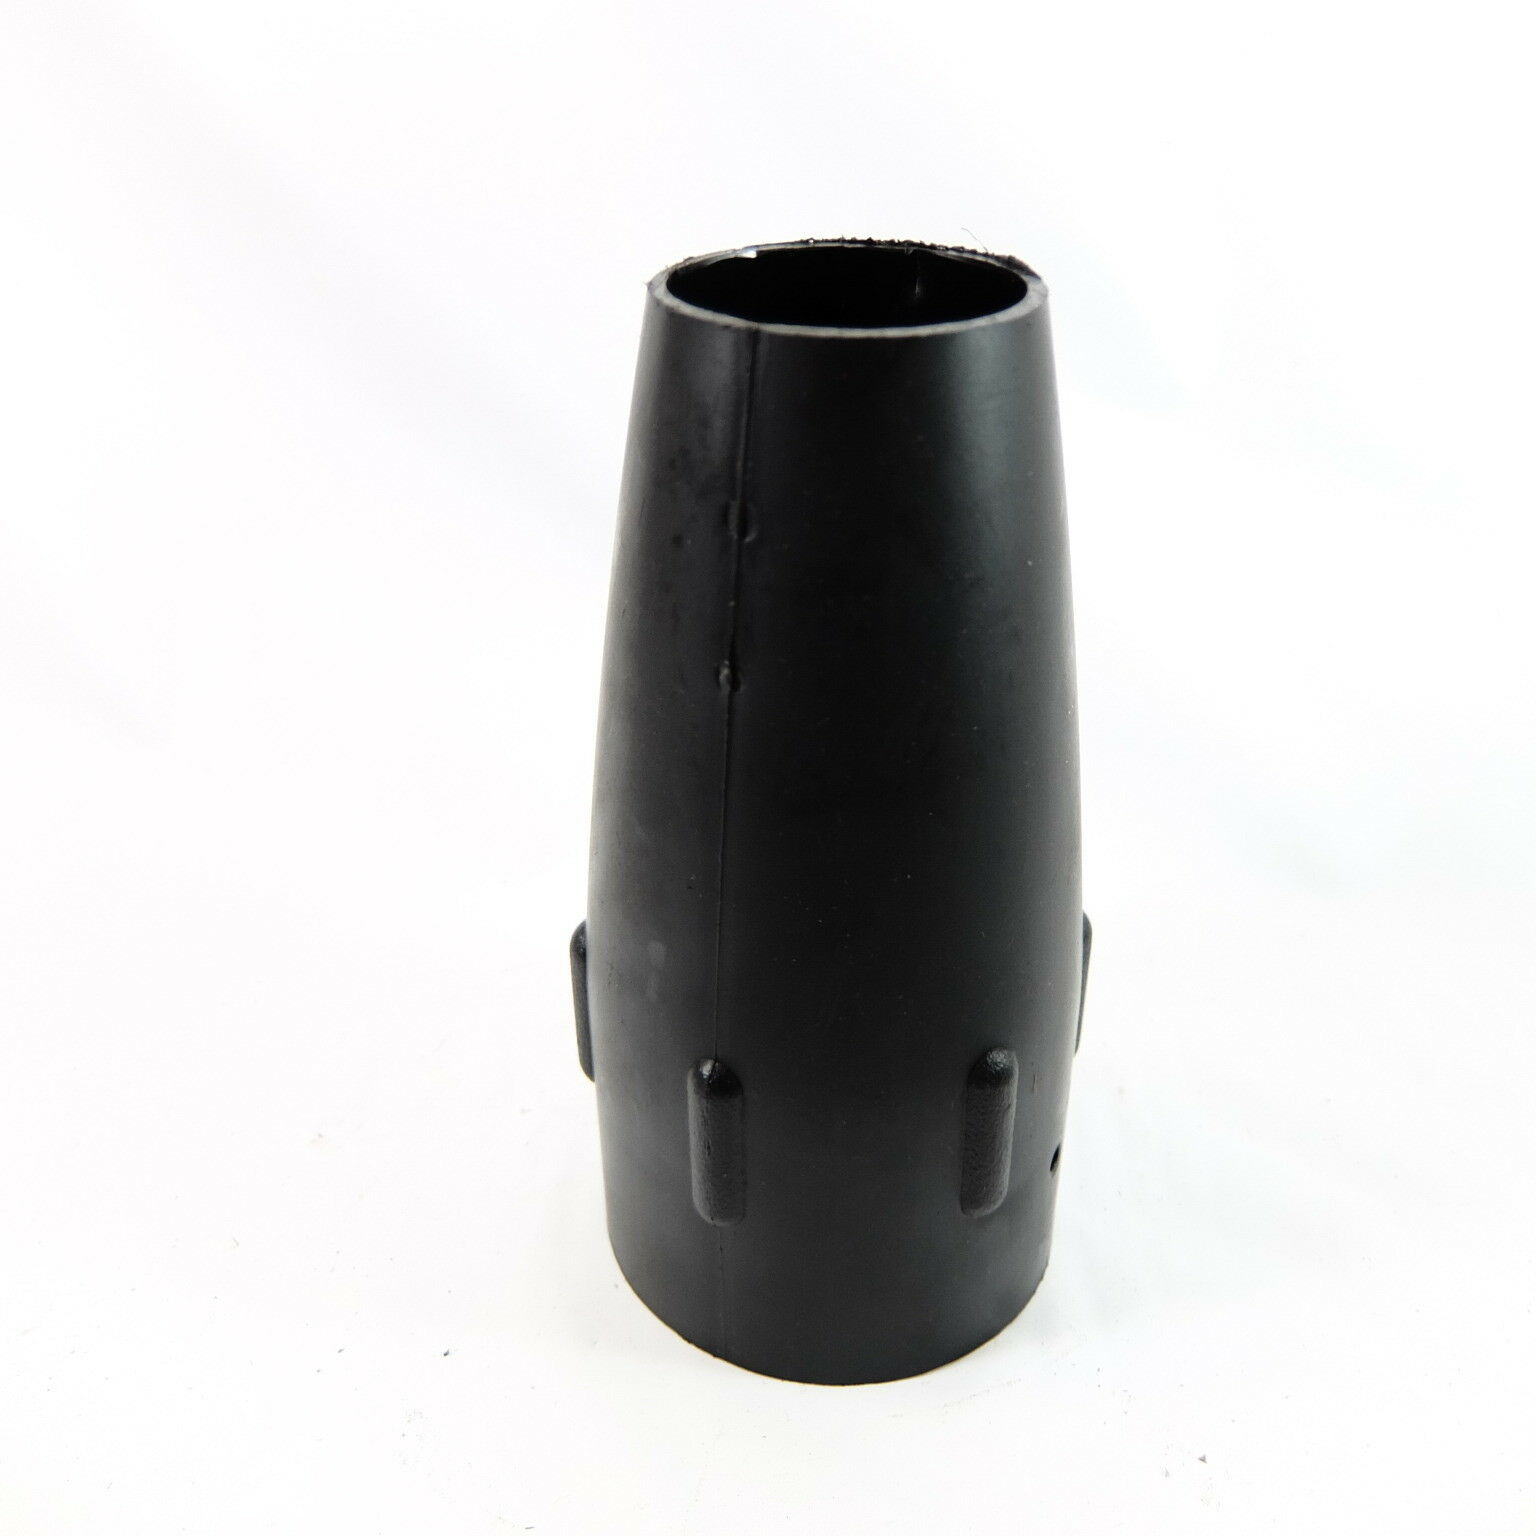 Primary image for New Craftsman Pouland Husqvarna Blower Tube Tip